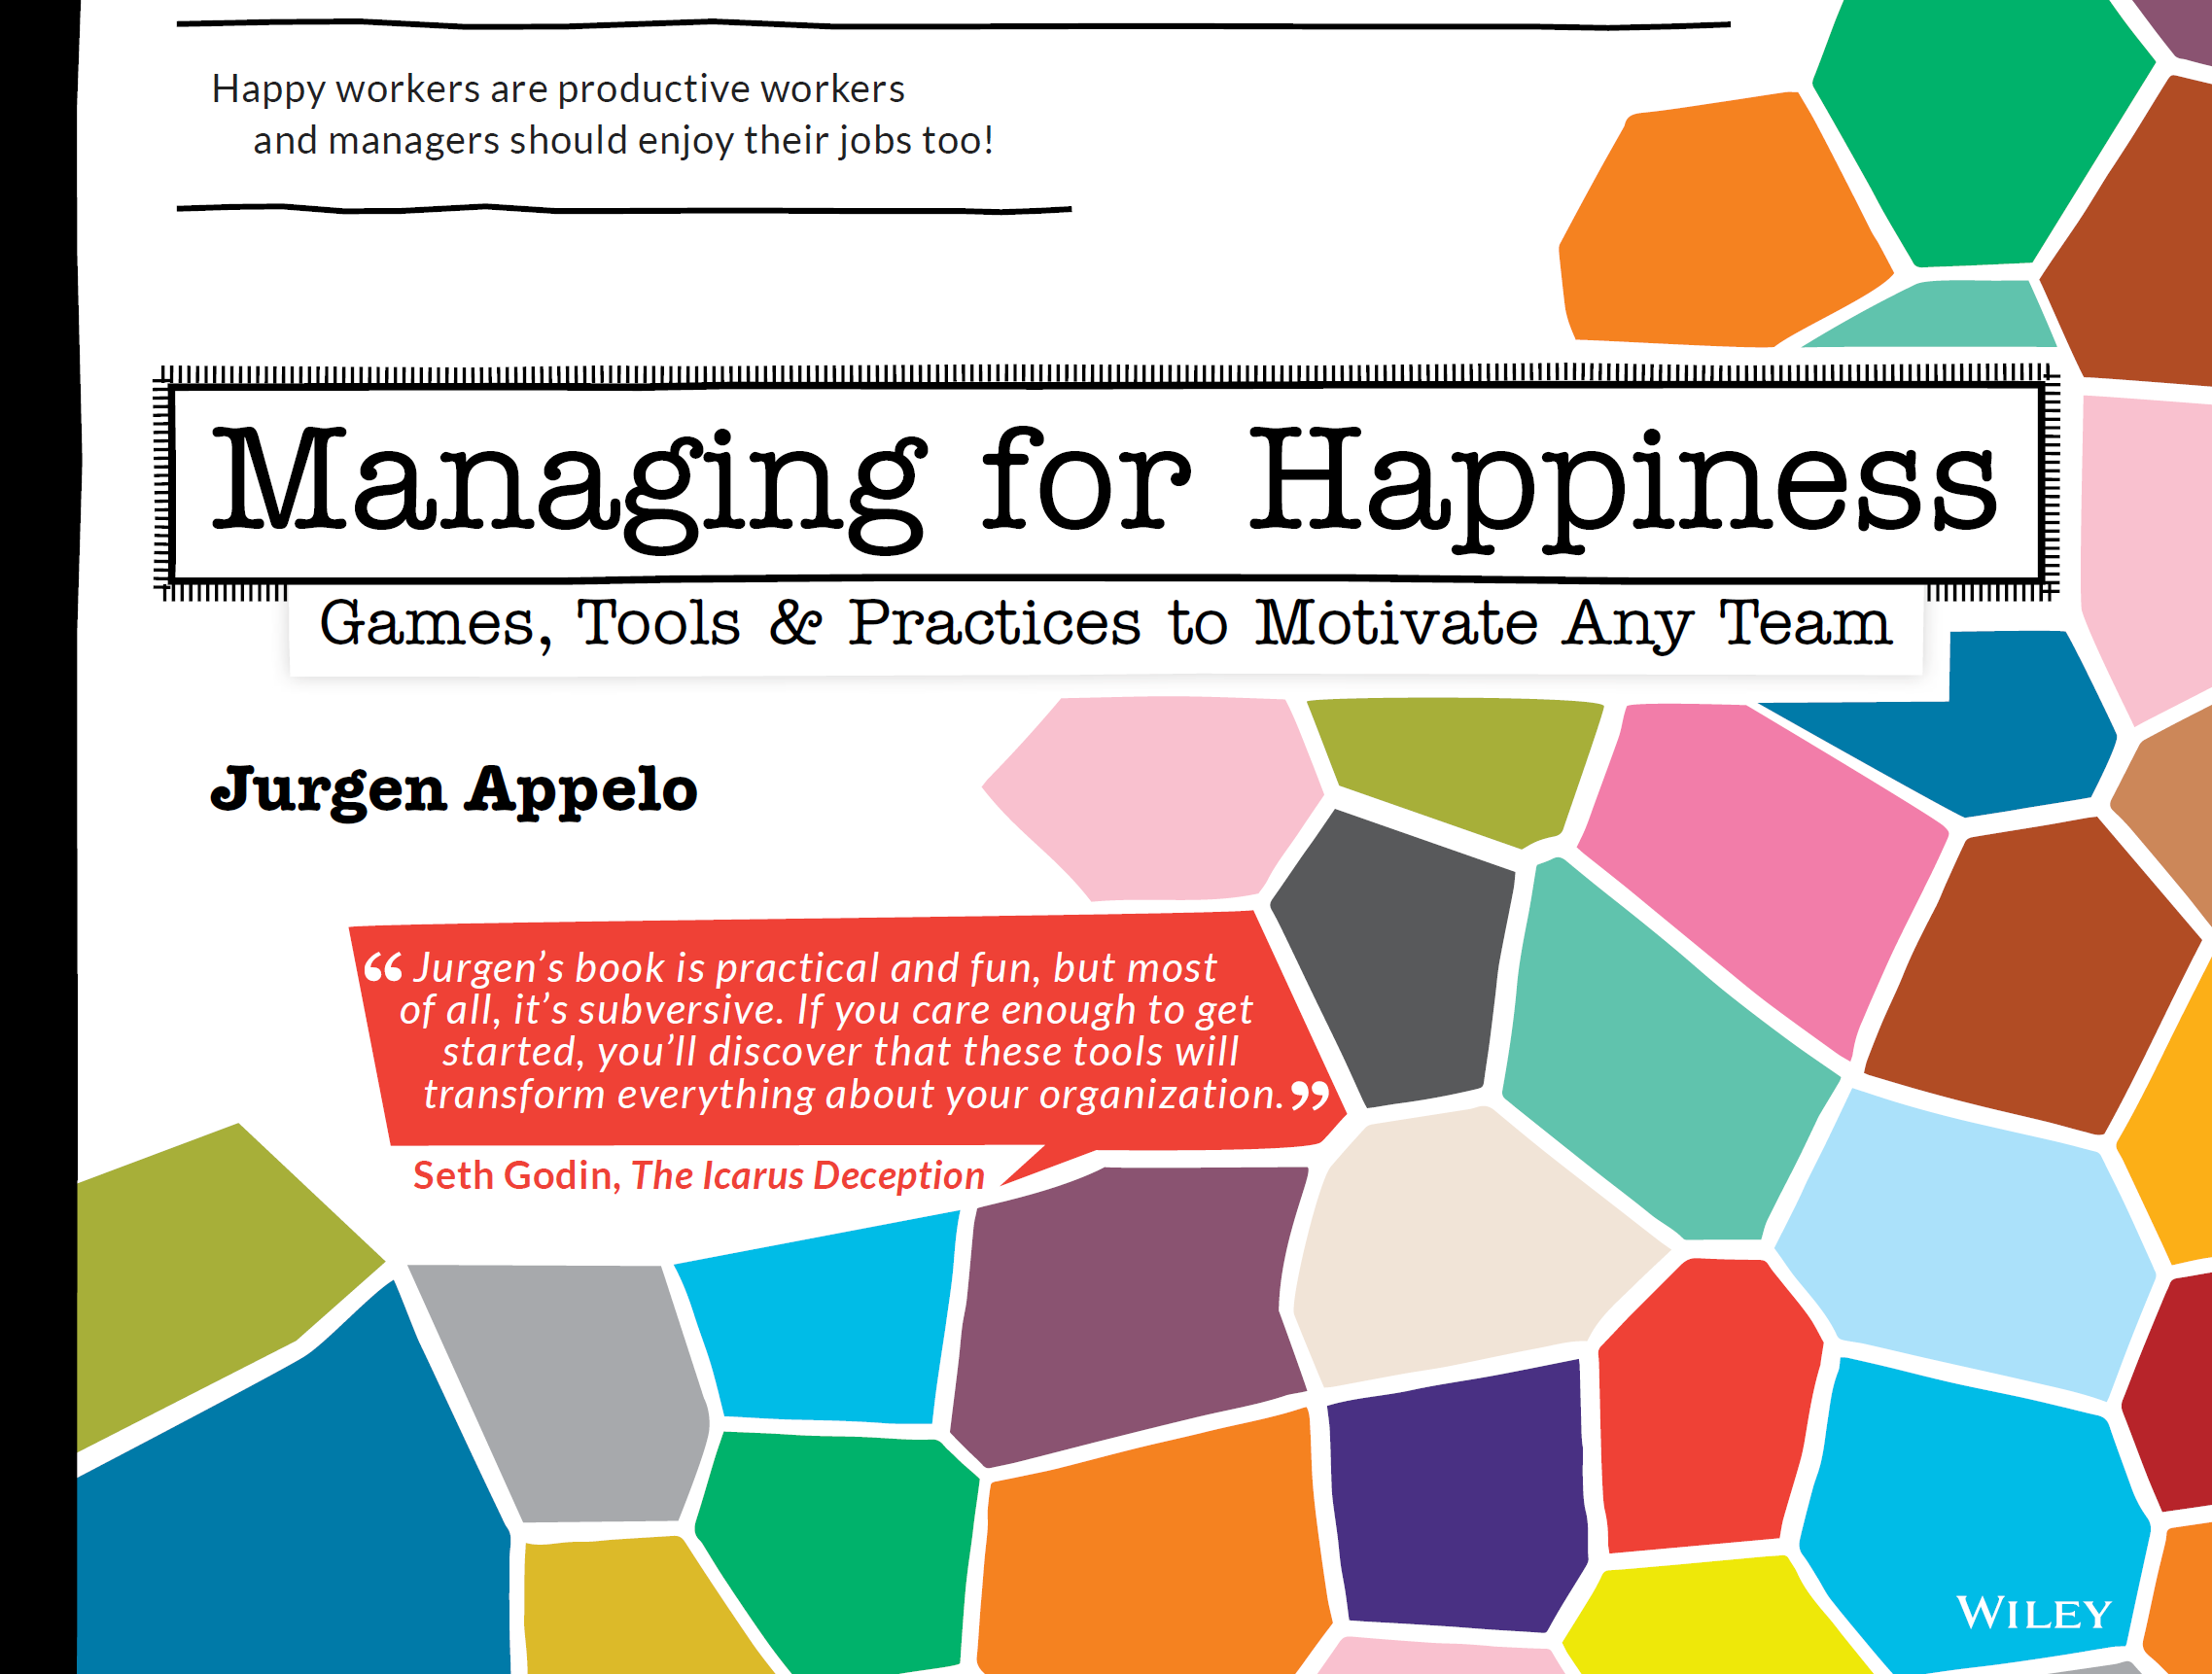 happy workers are more productive workers